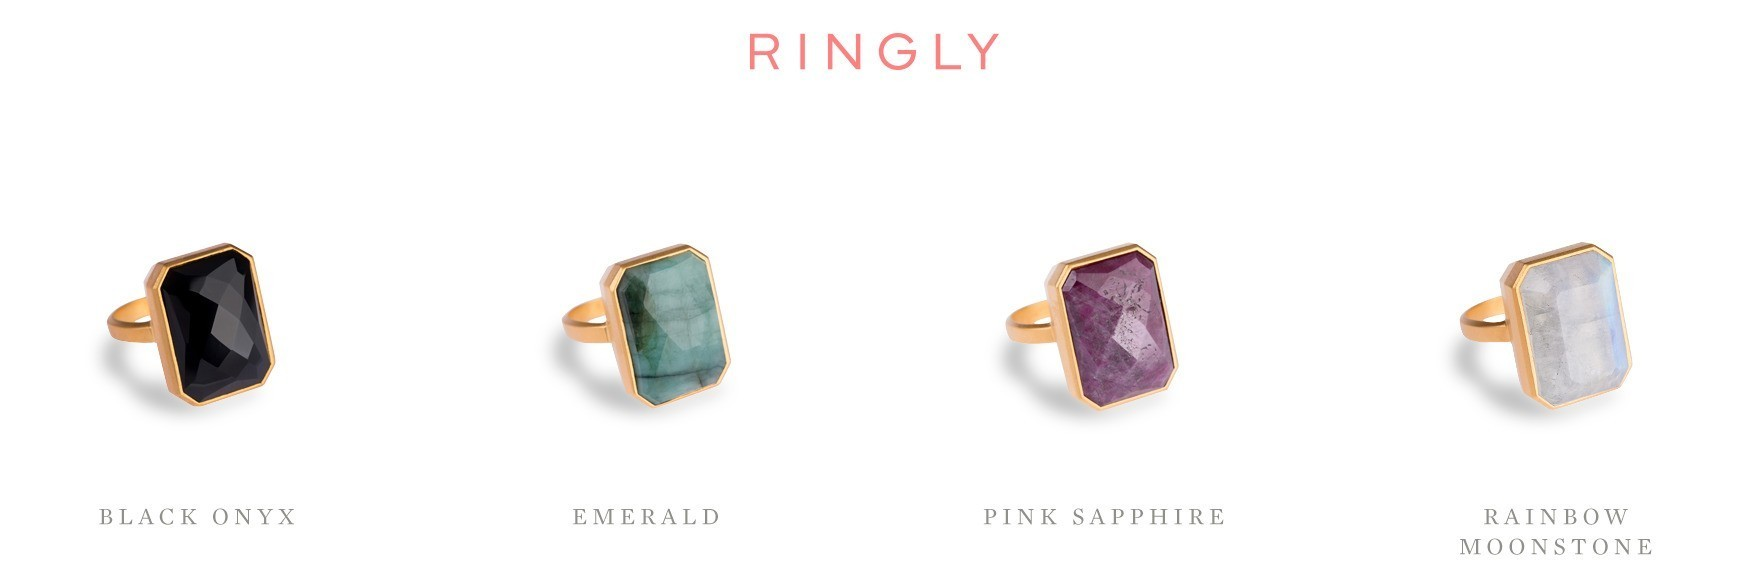 Check out these cool, connected rings from Ringly